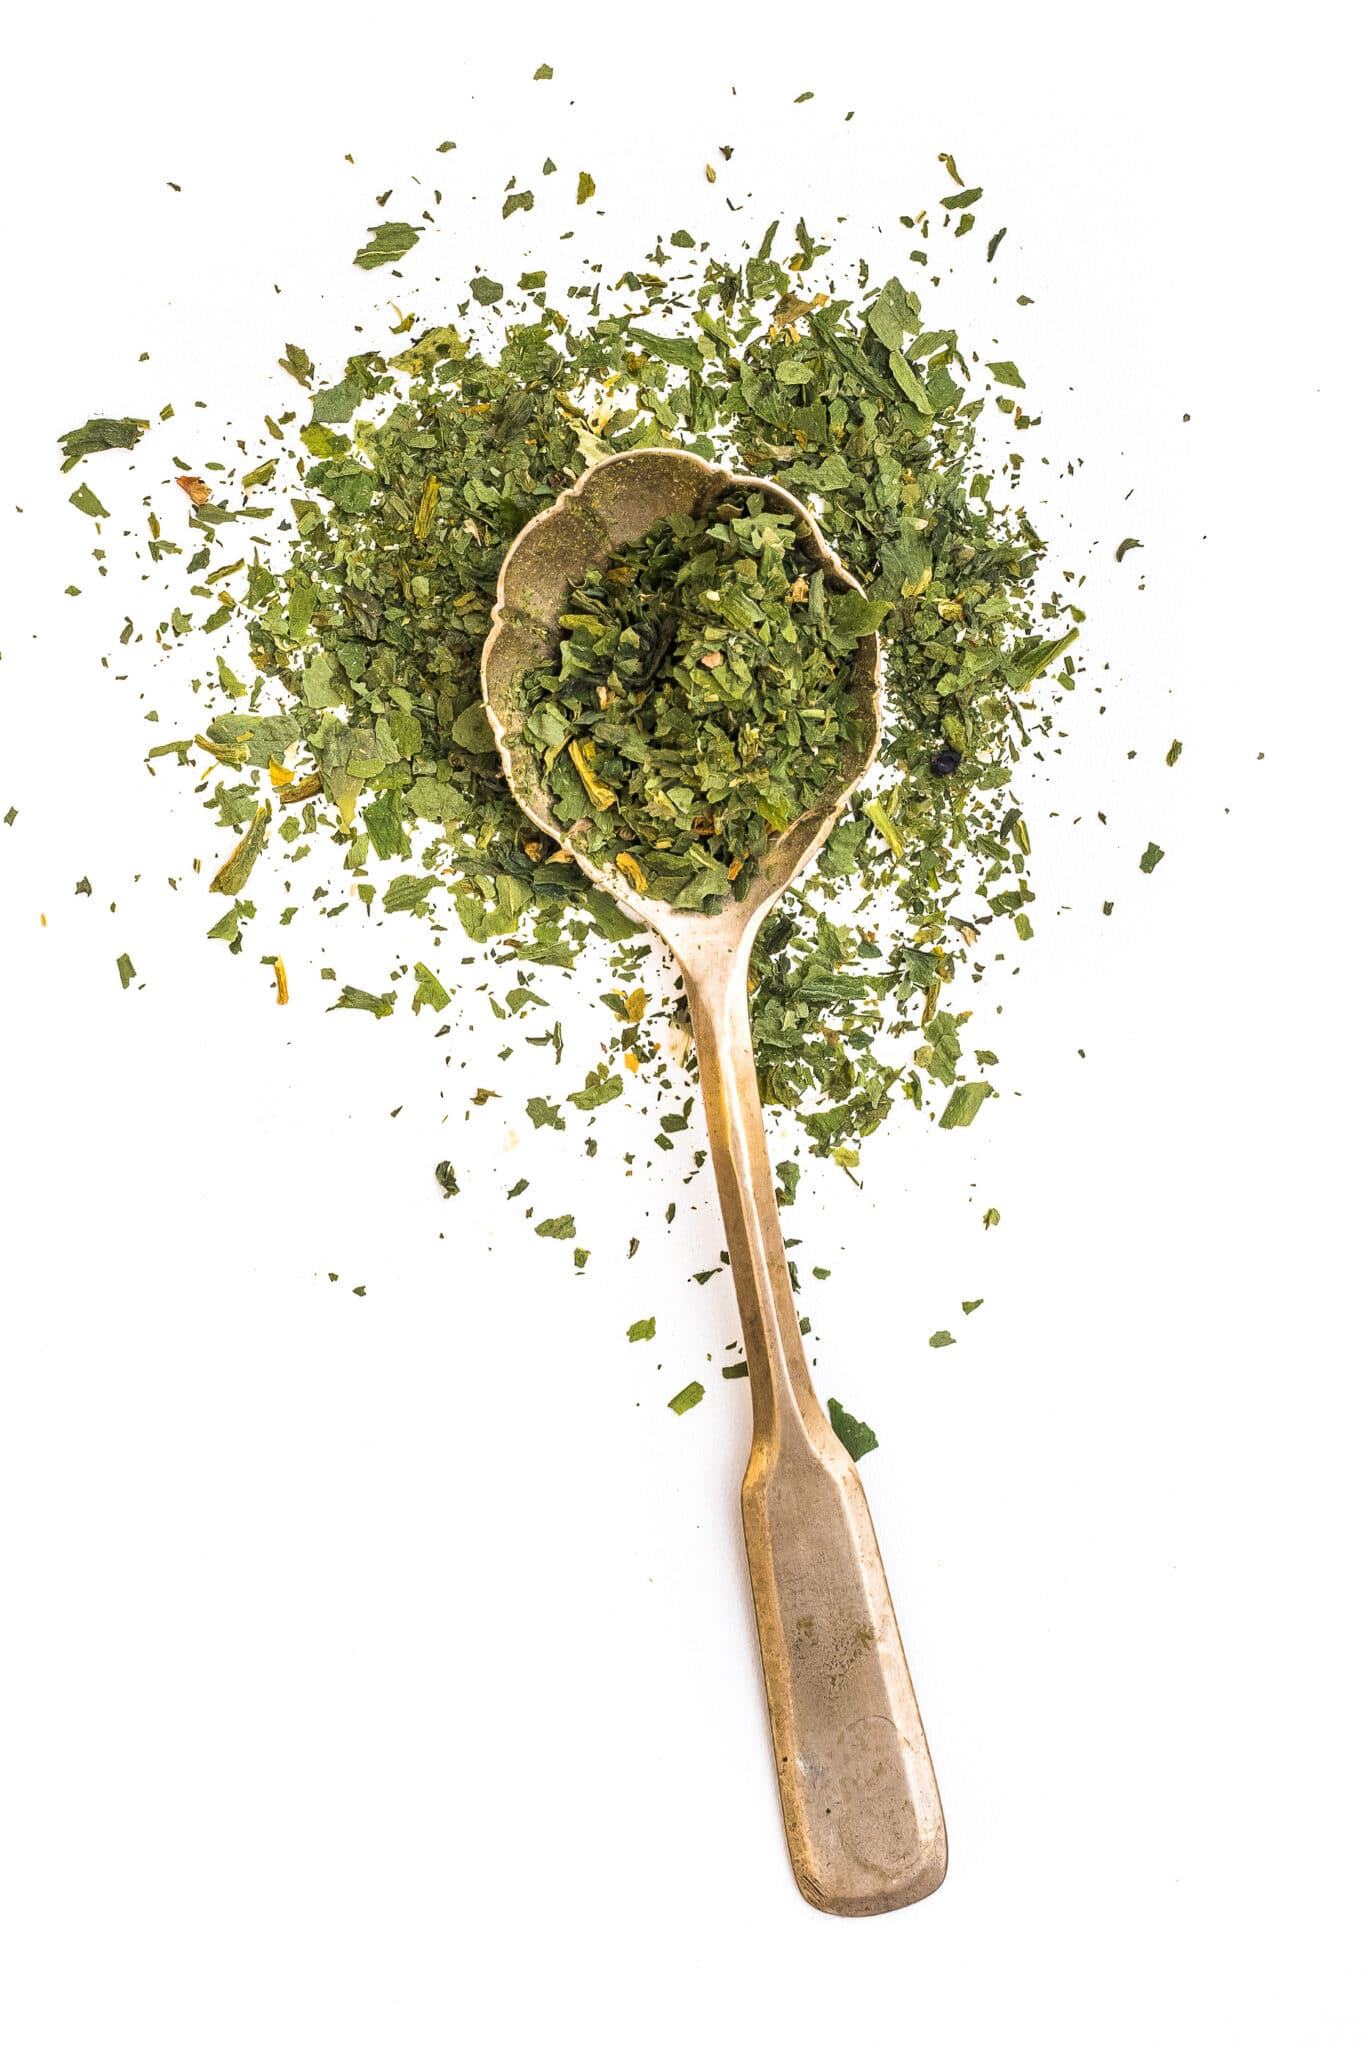 dried parsley in a spoon isolated on a white background.